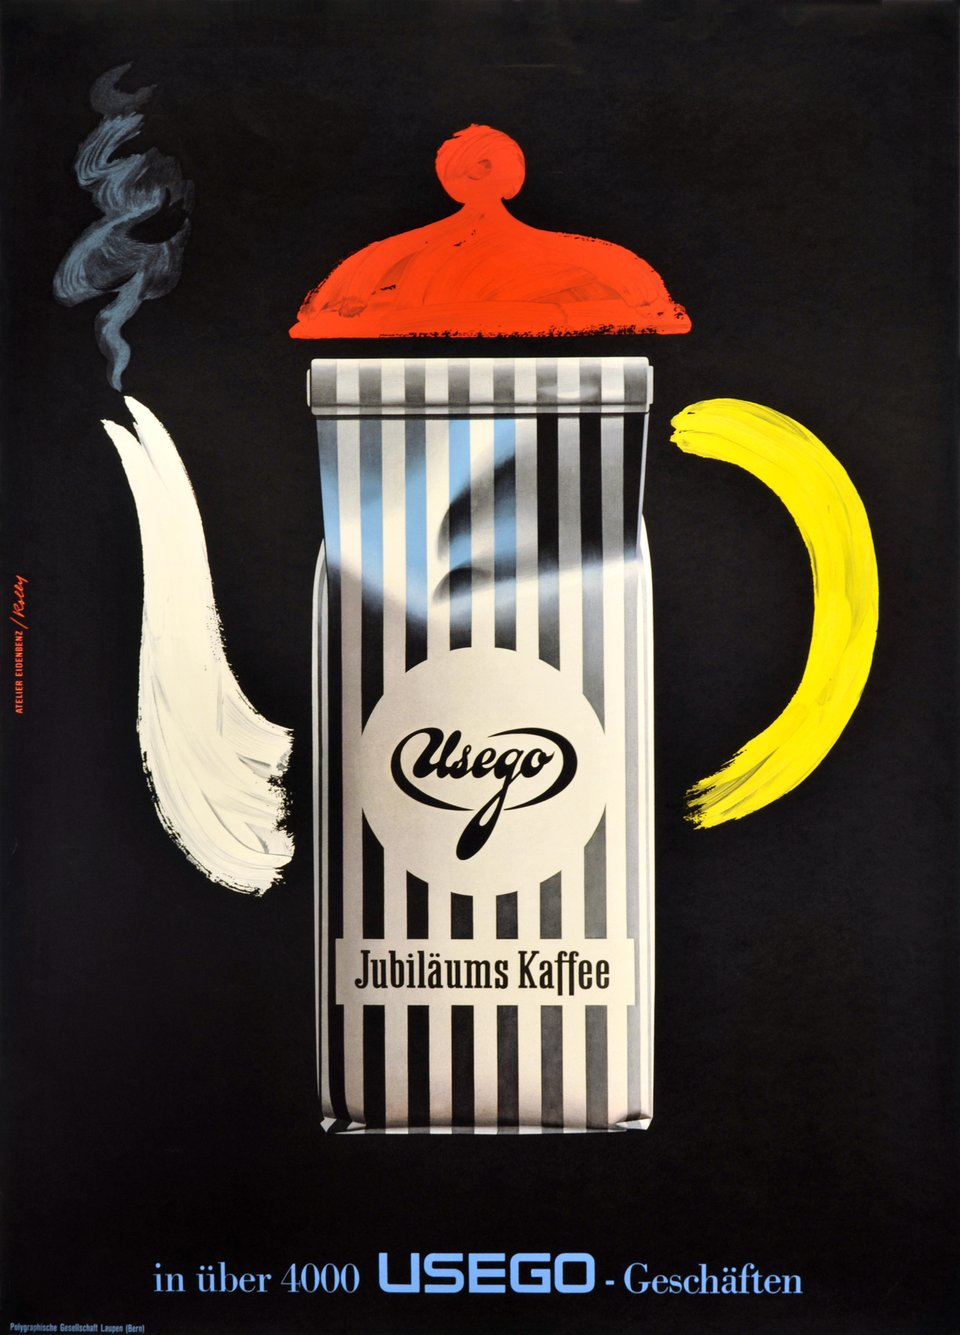 Usego Jubilaums kaffee – Affiche ancienne – Hermann EIDENBENZ, HansPeter ROLLY – 1959